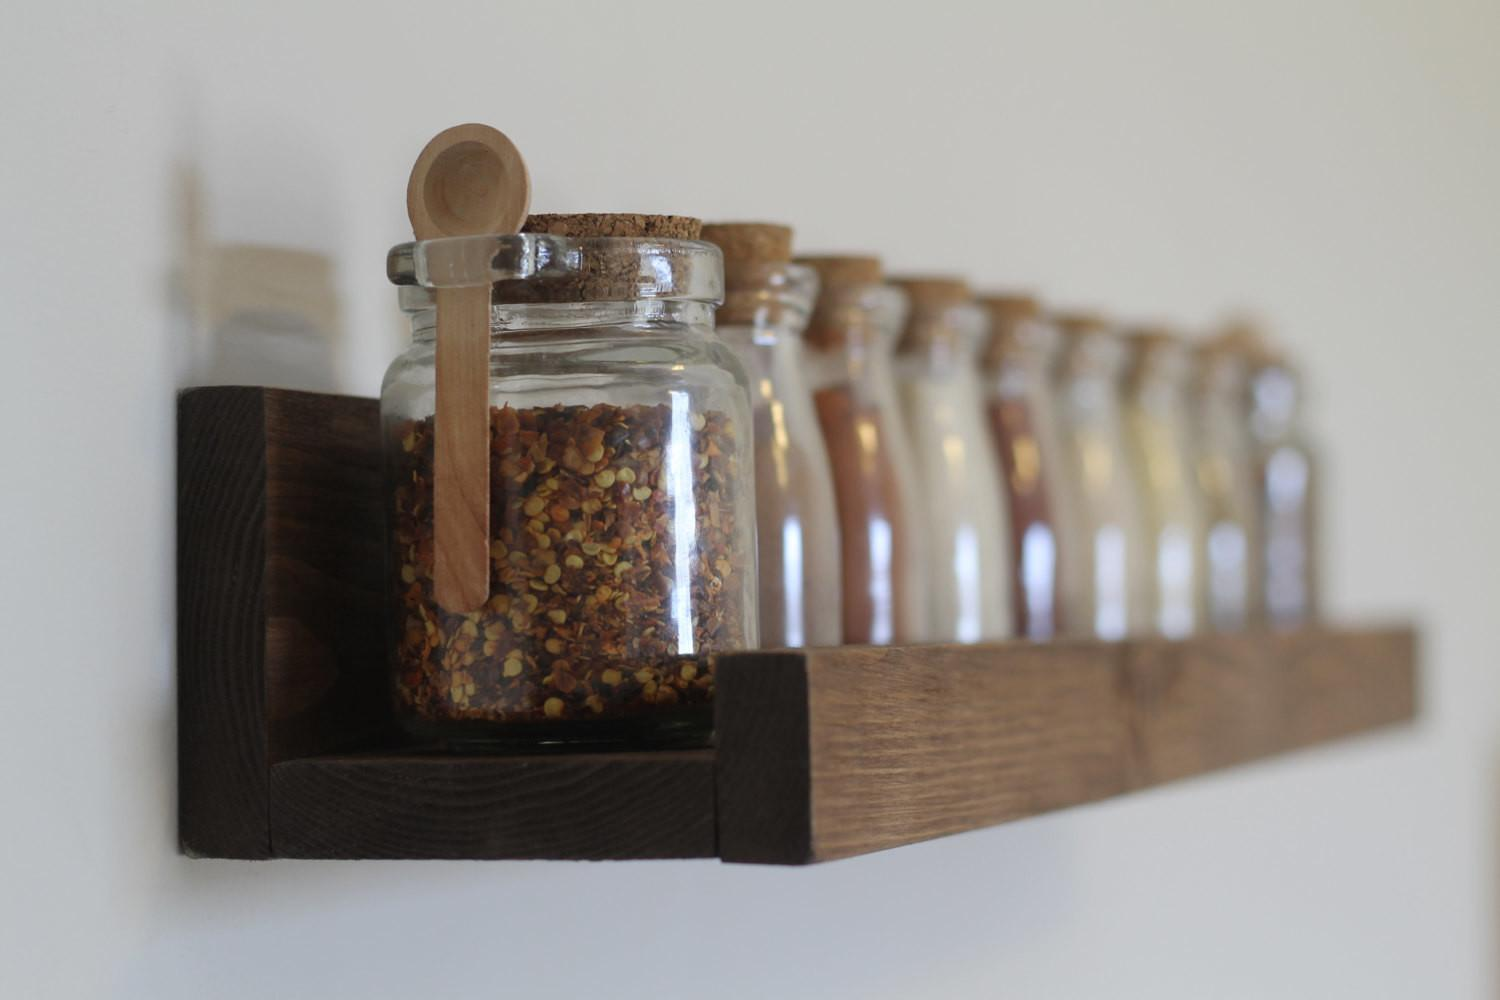 Rustic Wooden Spice Rack Ledge Shelf